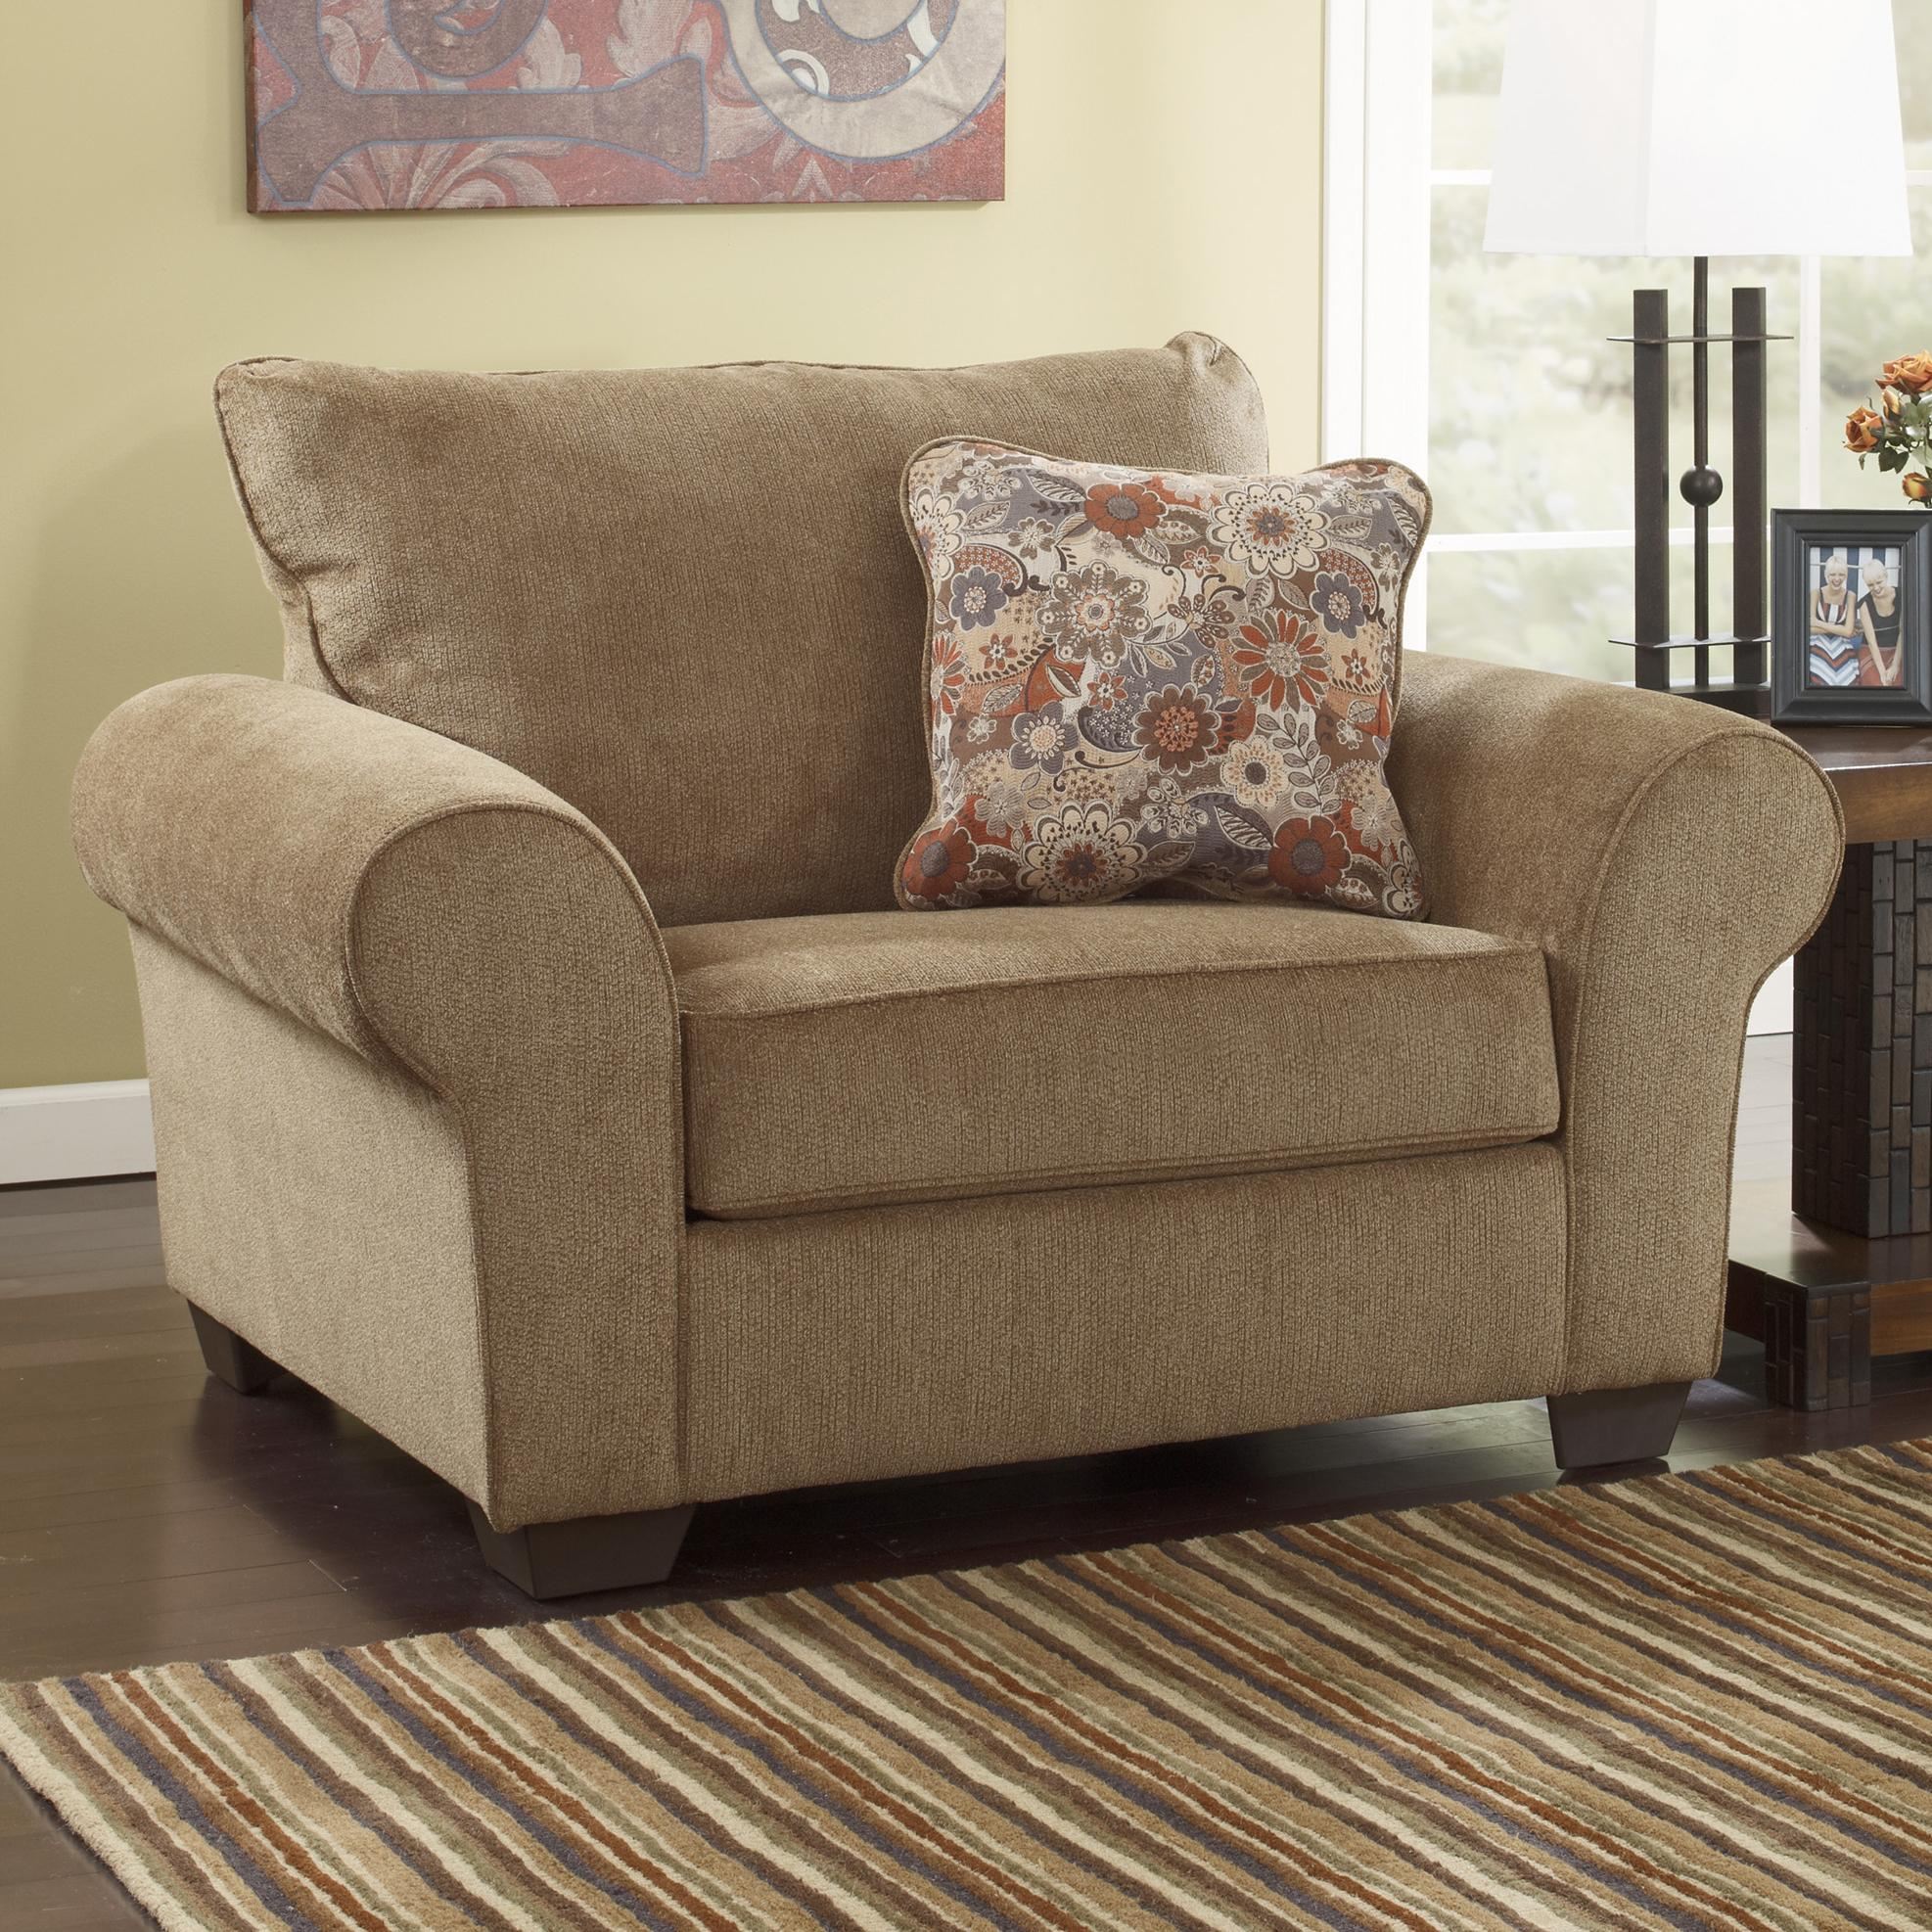 Ashley Furniture Galand Umber Chair and a Half with